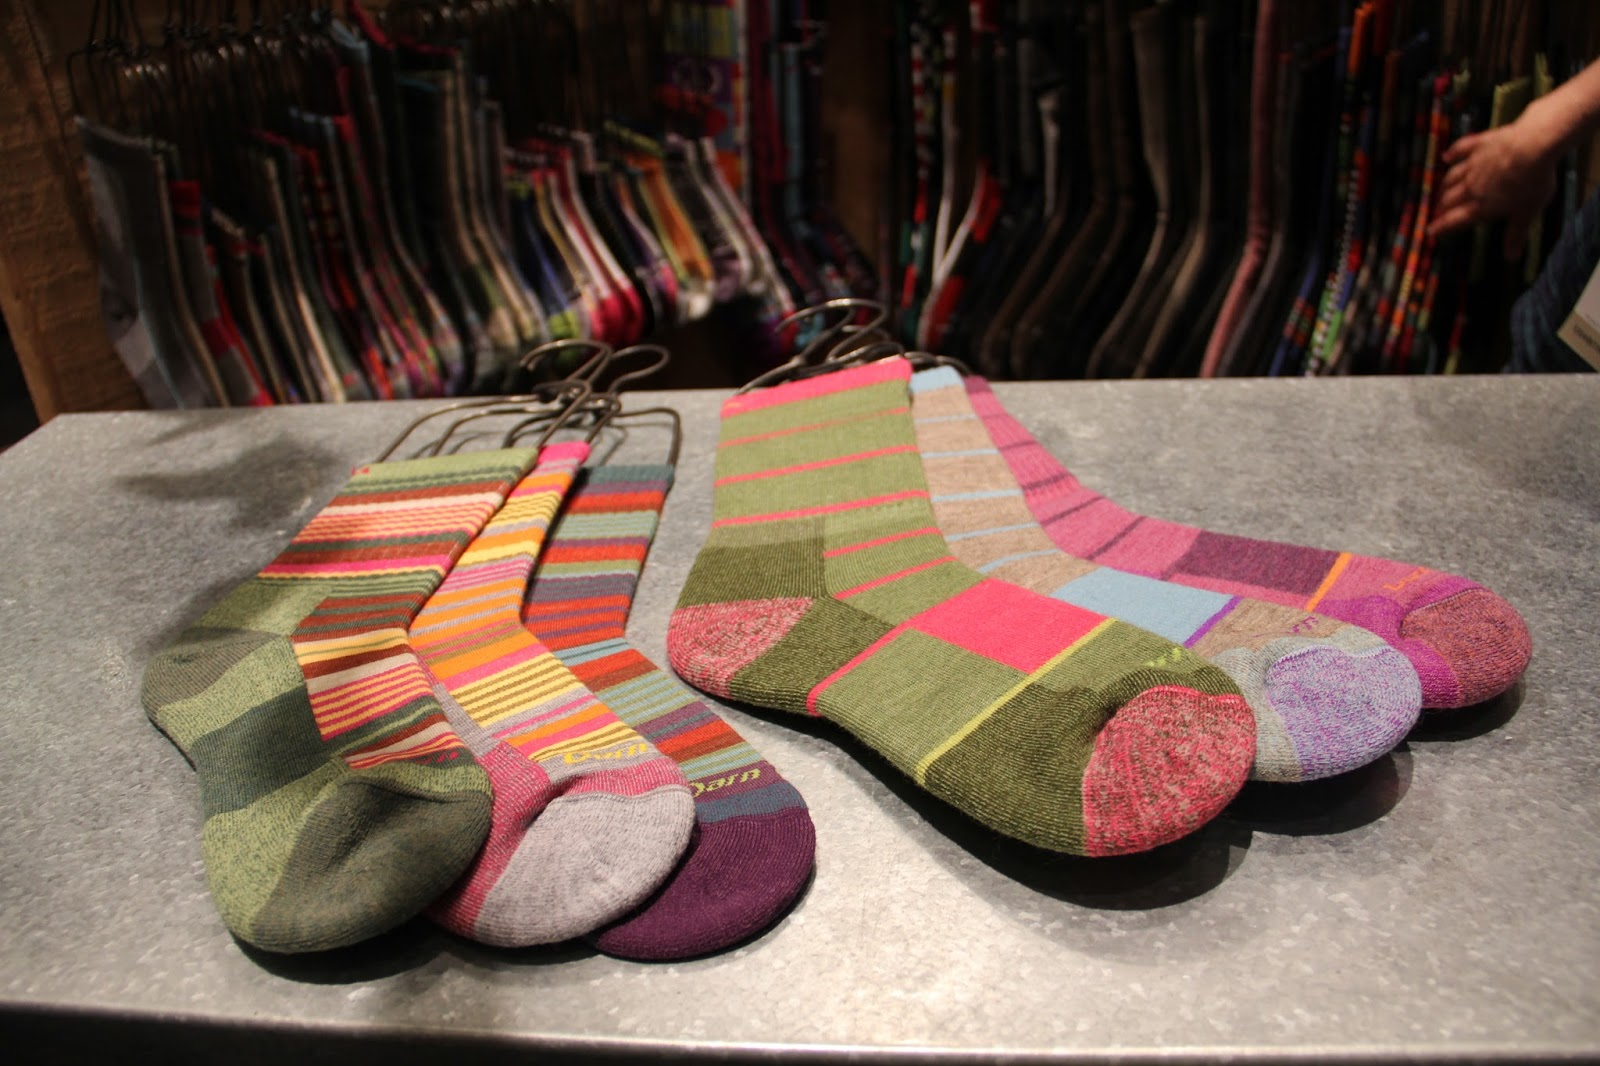 f4bc76902f6 ... wool…the most colorful sock collection ever…maybe they have Monet  re-incarnated spirit at work- designs are in collab with Poppy Gall Design  Studio.